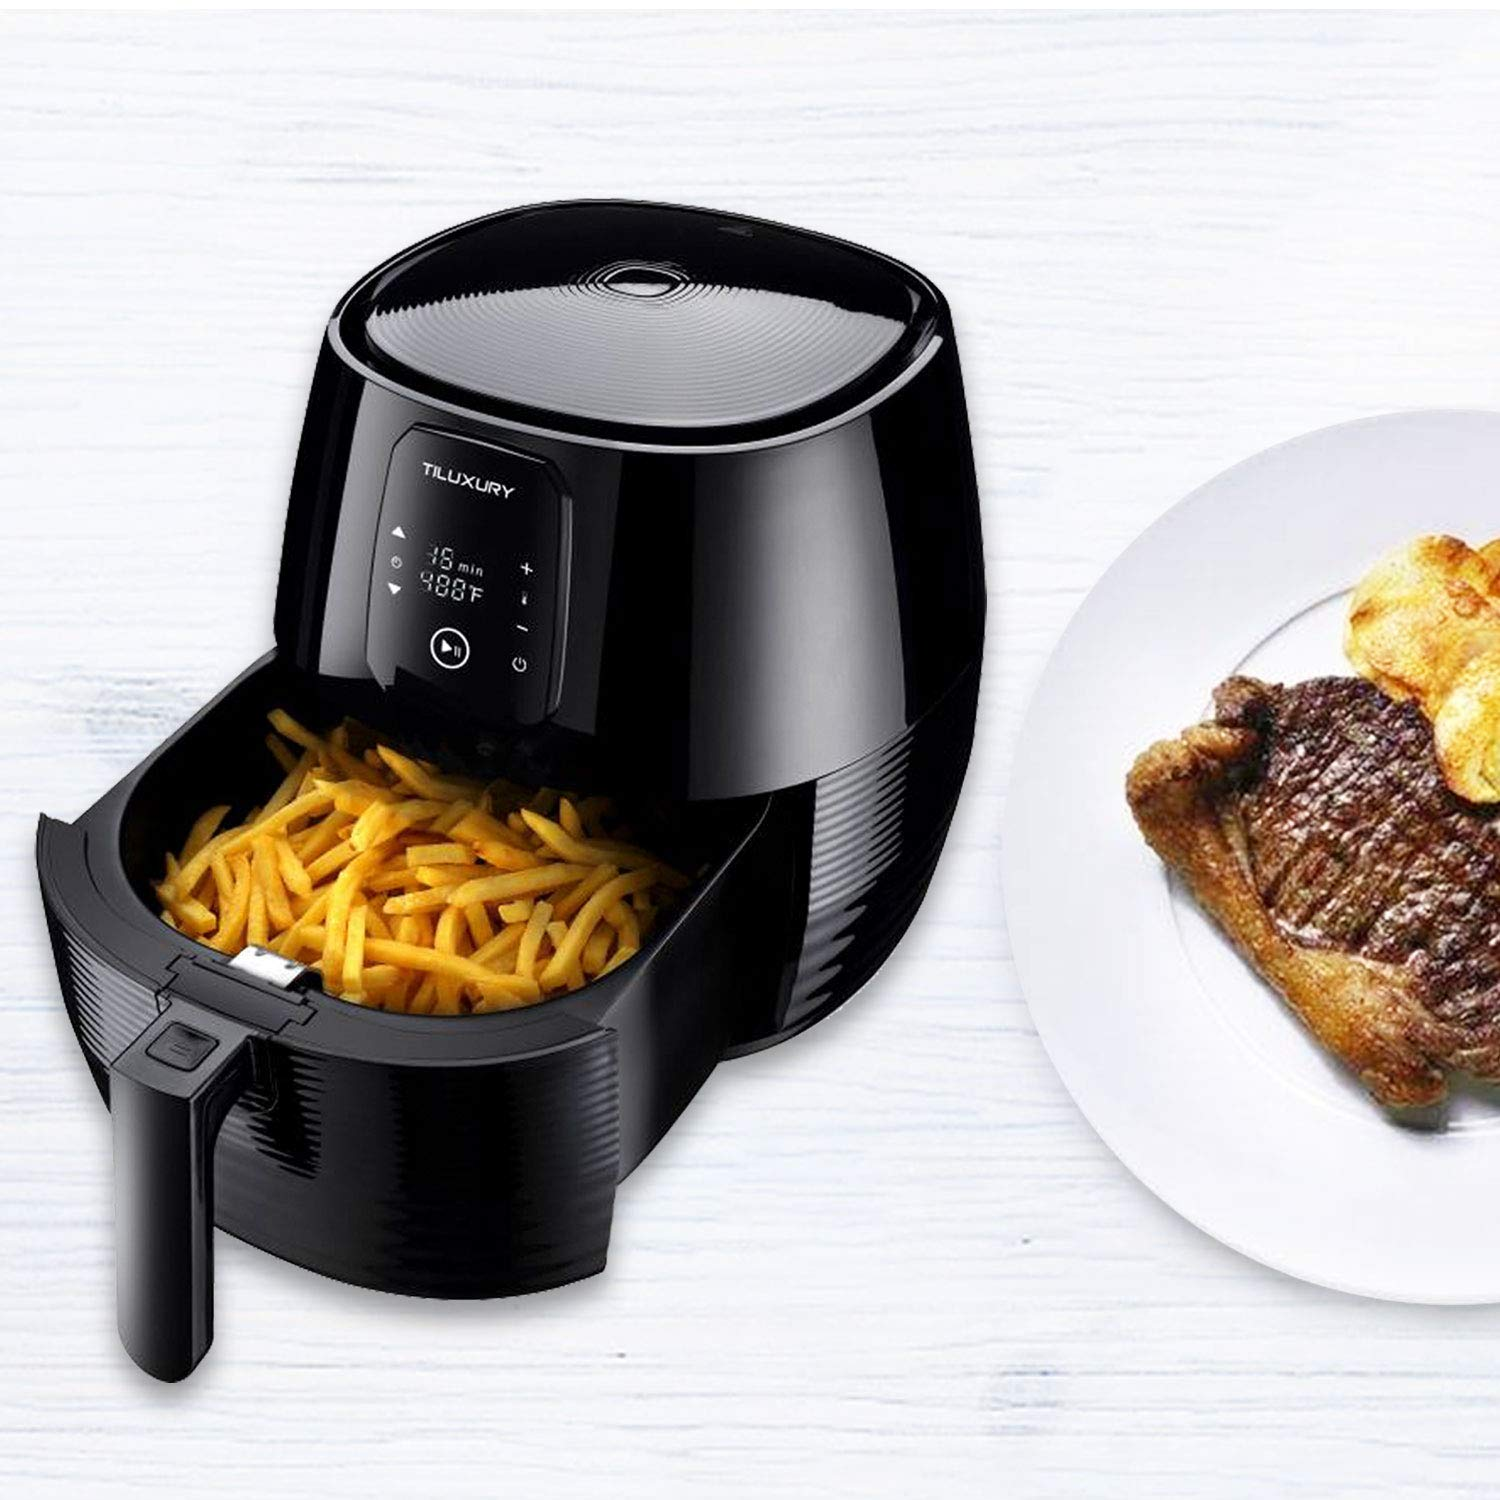 XL 5.8QT Air Fryer Less Fat Oil Healthy Cooker,For Healthy Fried Food,Temperature Control LED Display Black